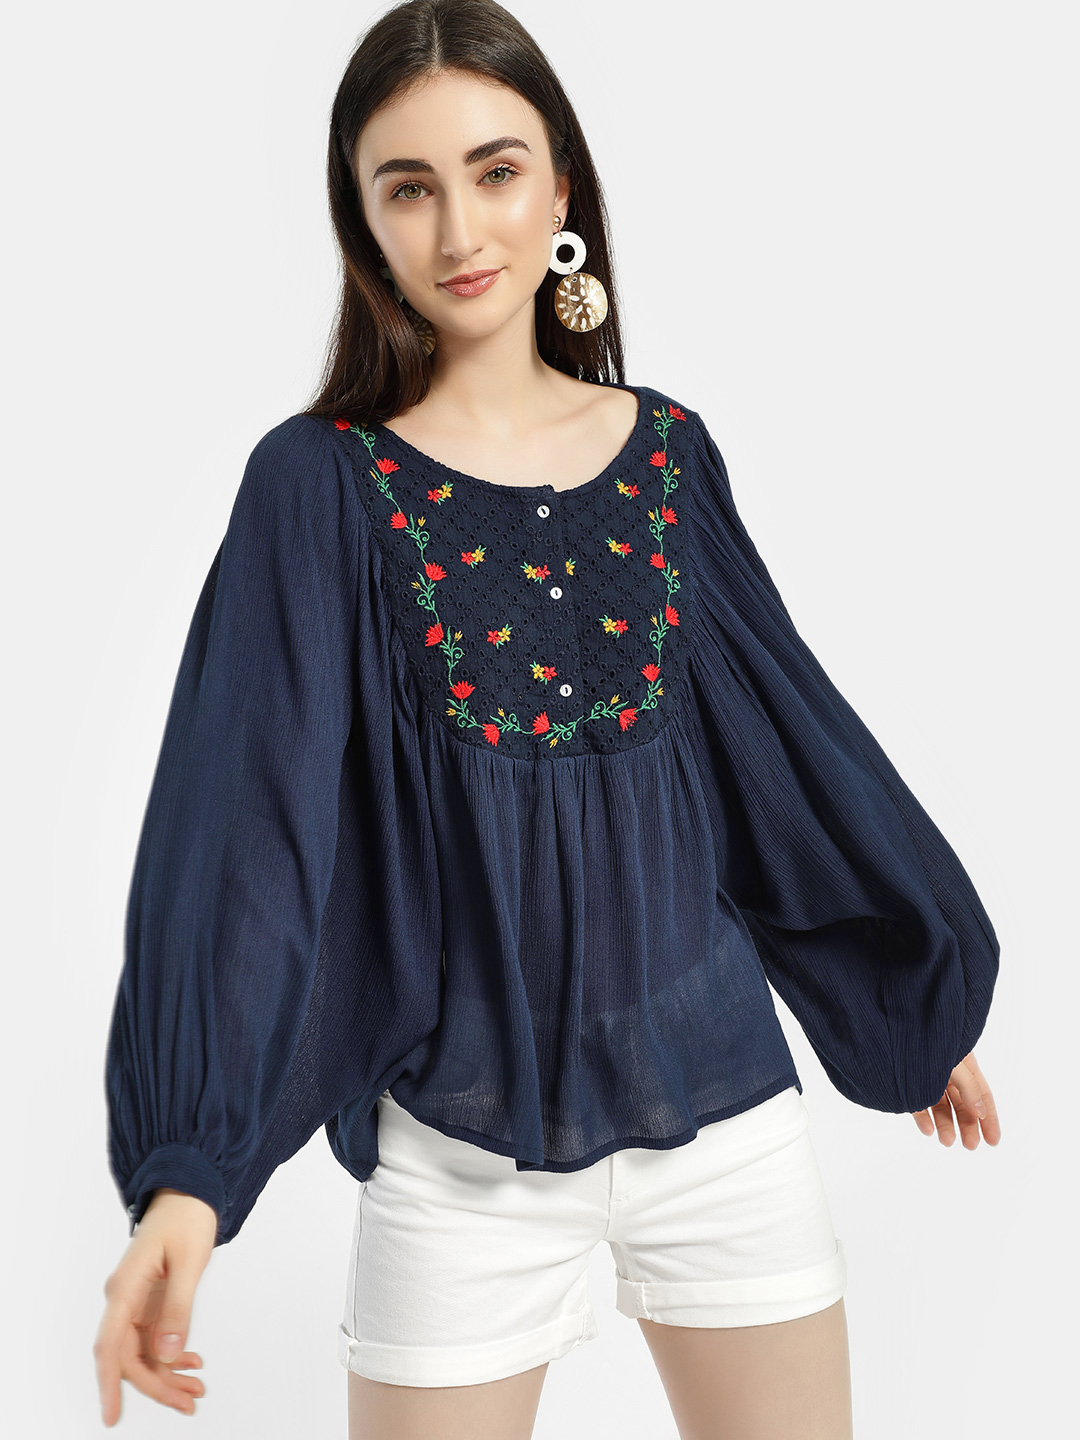 Rena Love Blue Yoke Embroidered Blouse 1